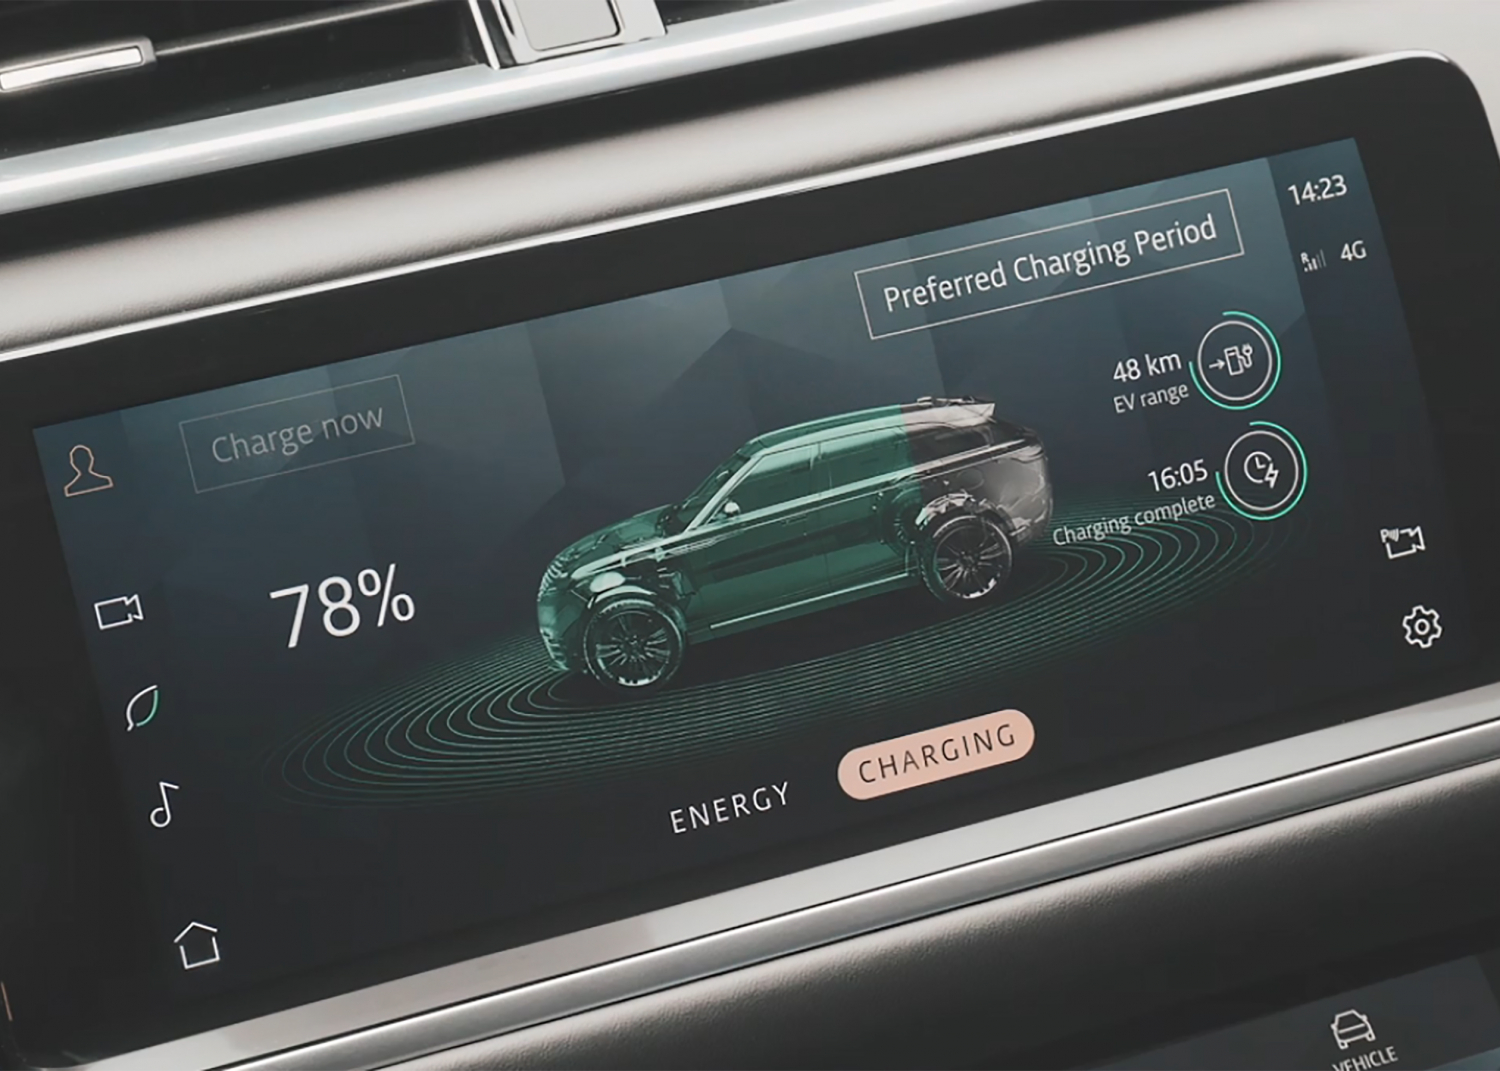 Range Rover Velar Electrifies with Plug-in Hybrid and State-of-the-art Infotainment - Image 5